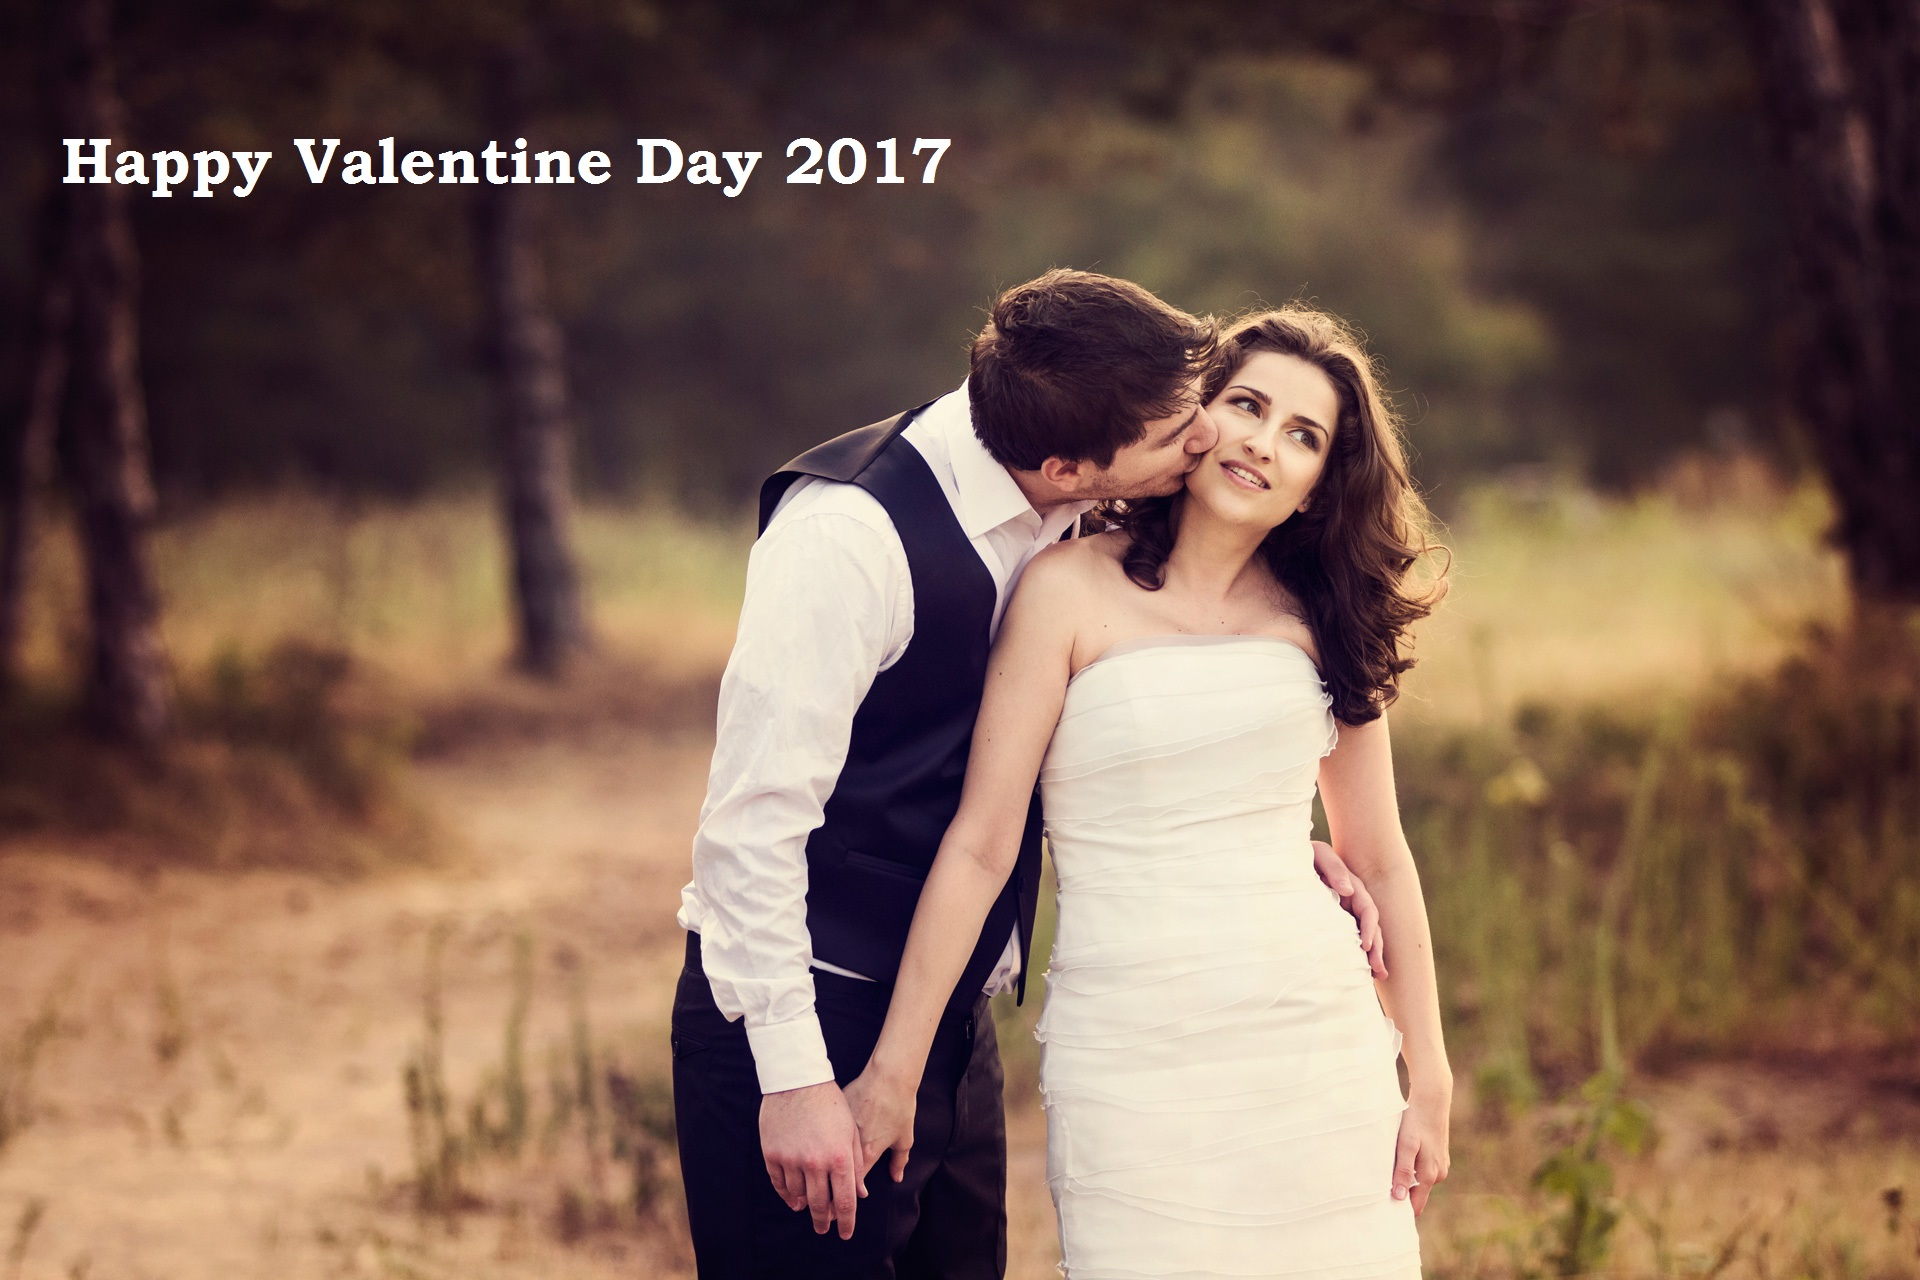 Kiss Day Images for Whatsapp DP, Profile Wallpapers Free Download - Whatsapp Lover